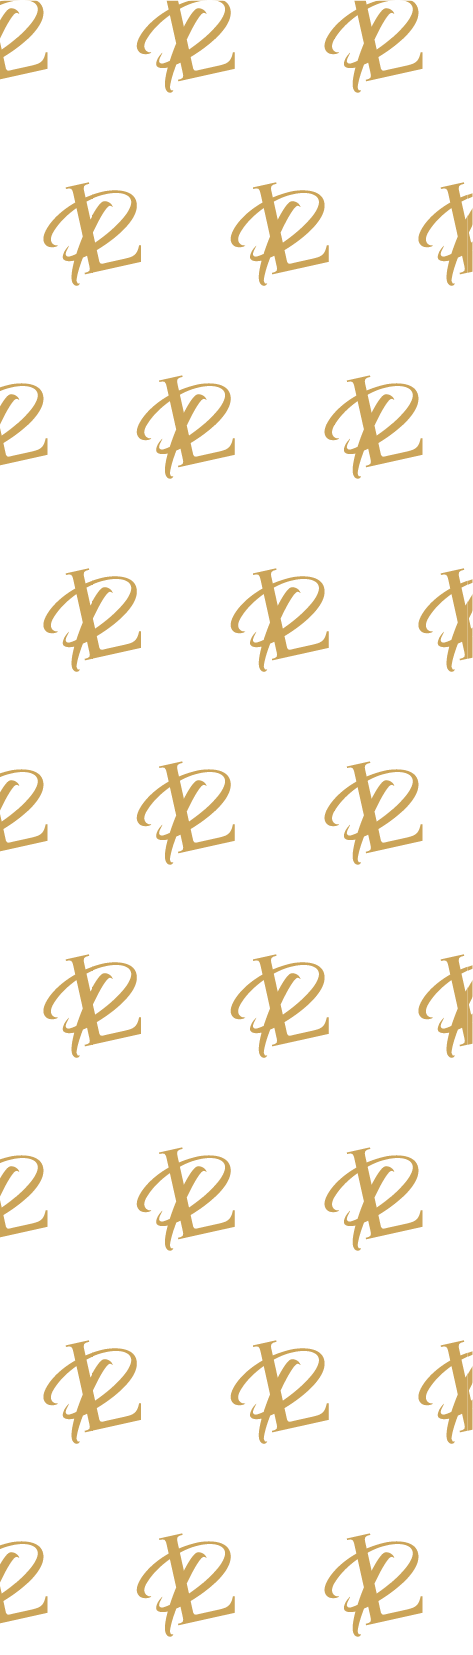 Pen-Design_white and gold - repeated LL icon pattern.png